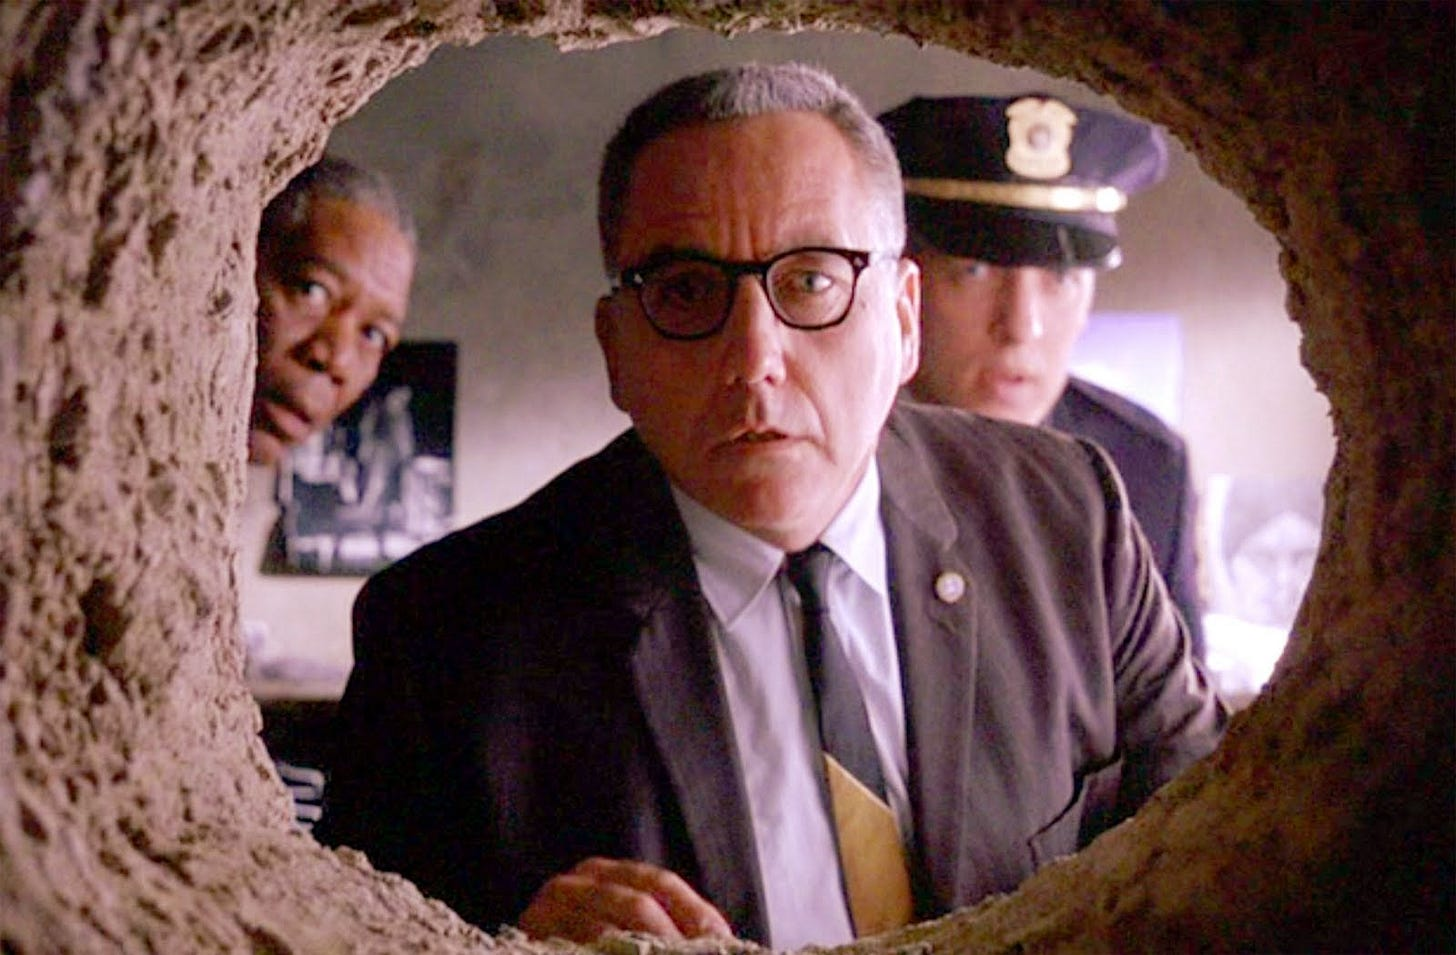 This is how long Andy's tunnel was in The Shawshank Redemption ...